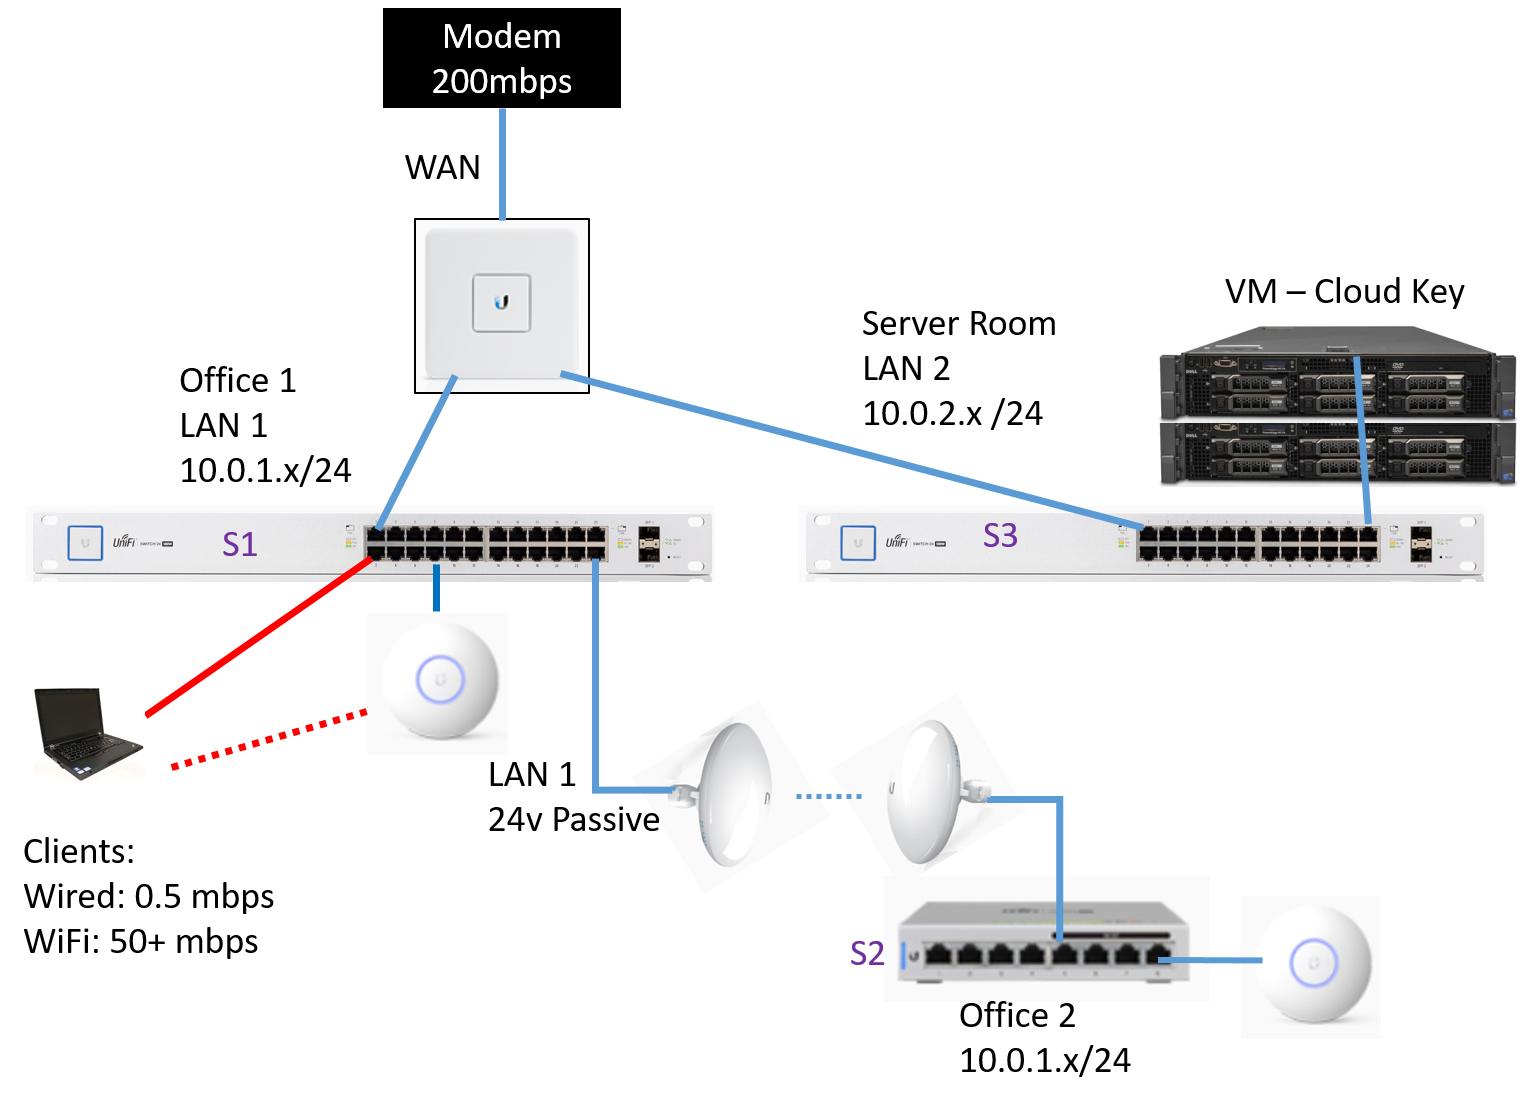 ubiquiti wiring diagram help slow wired connections   decent  wifi  switch keeps  help slow wired connections   decent